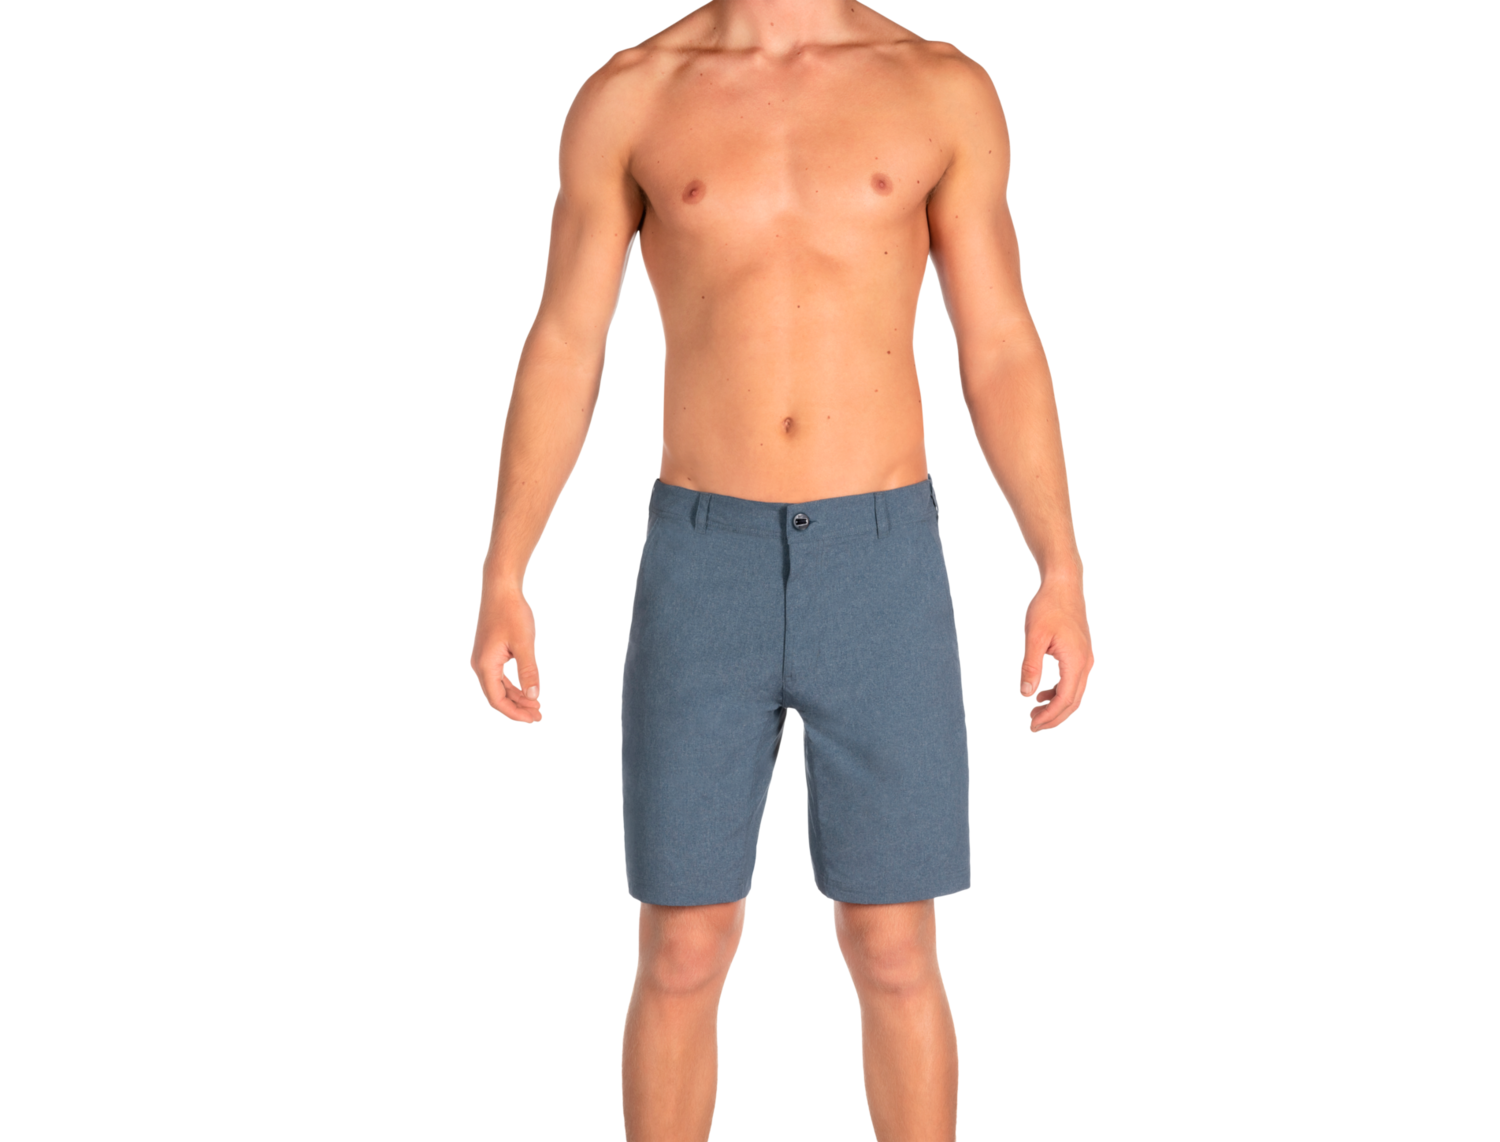 SXTX27 NHT New Frontier 2 in 1 Shorts 36